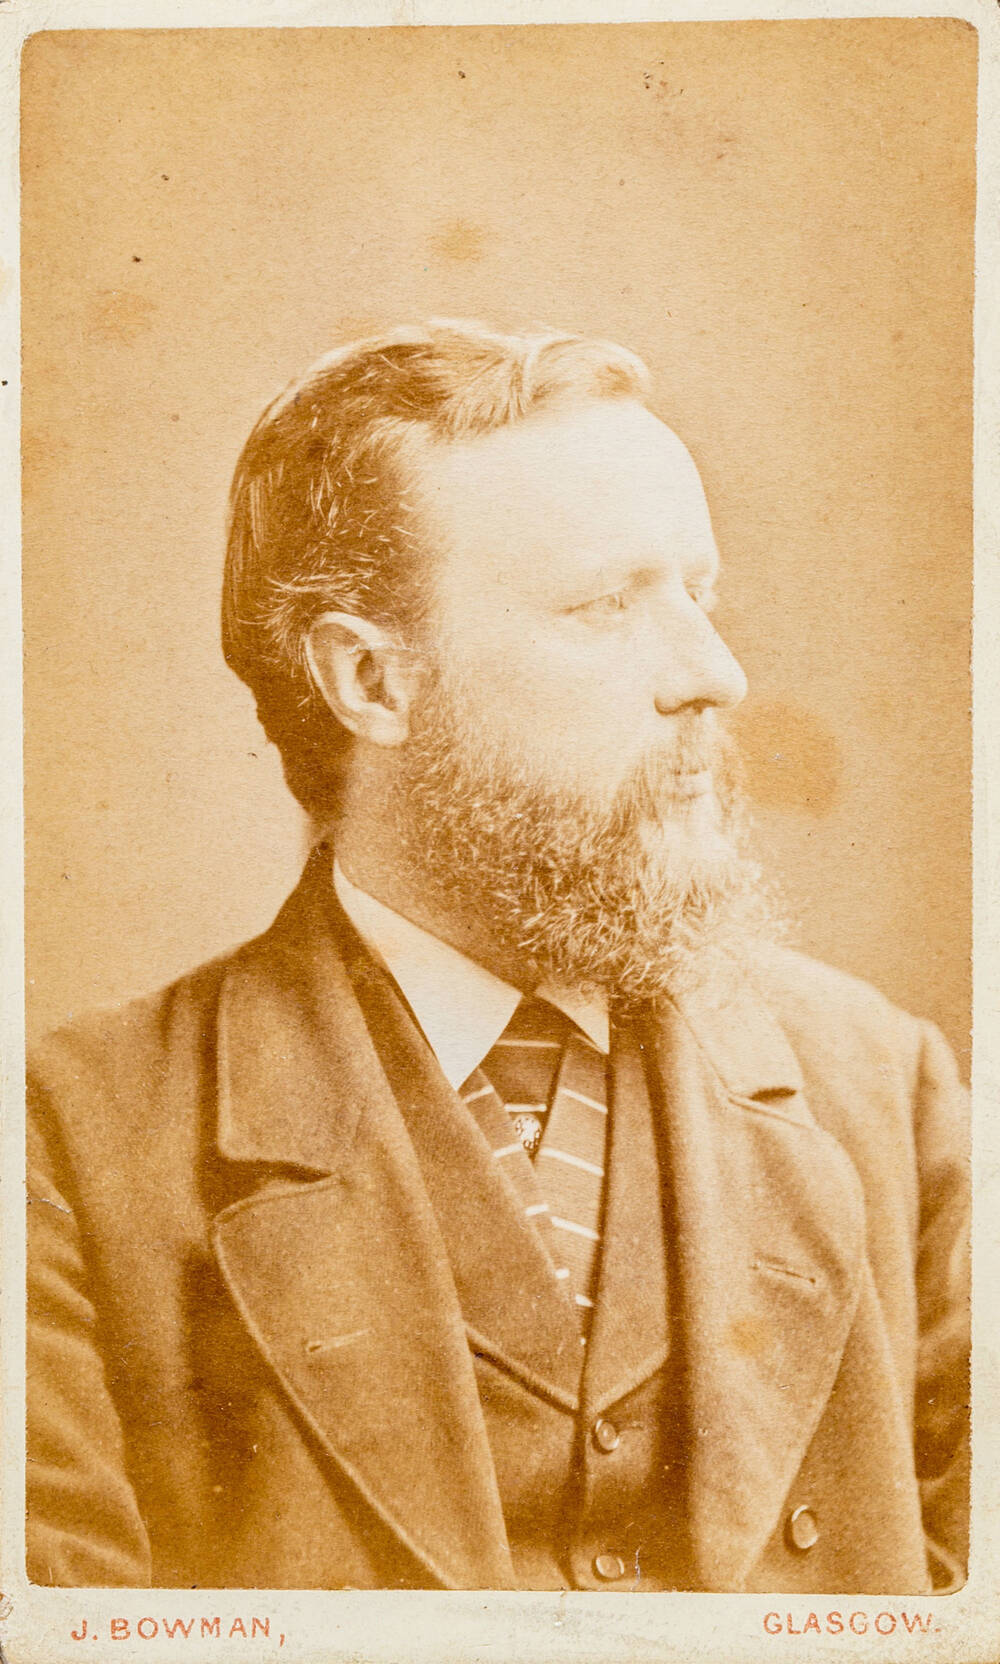 A black and white photo of the head and shoulders of a bearded man wearing a suit and tie, looking to his left.